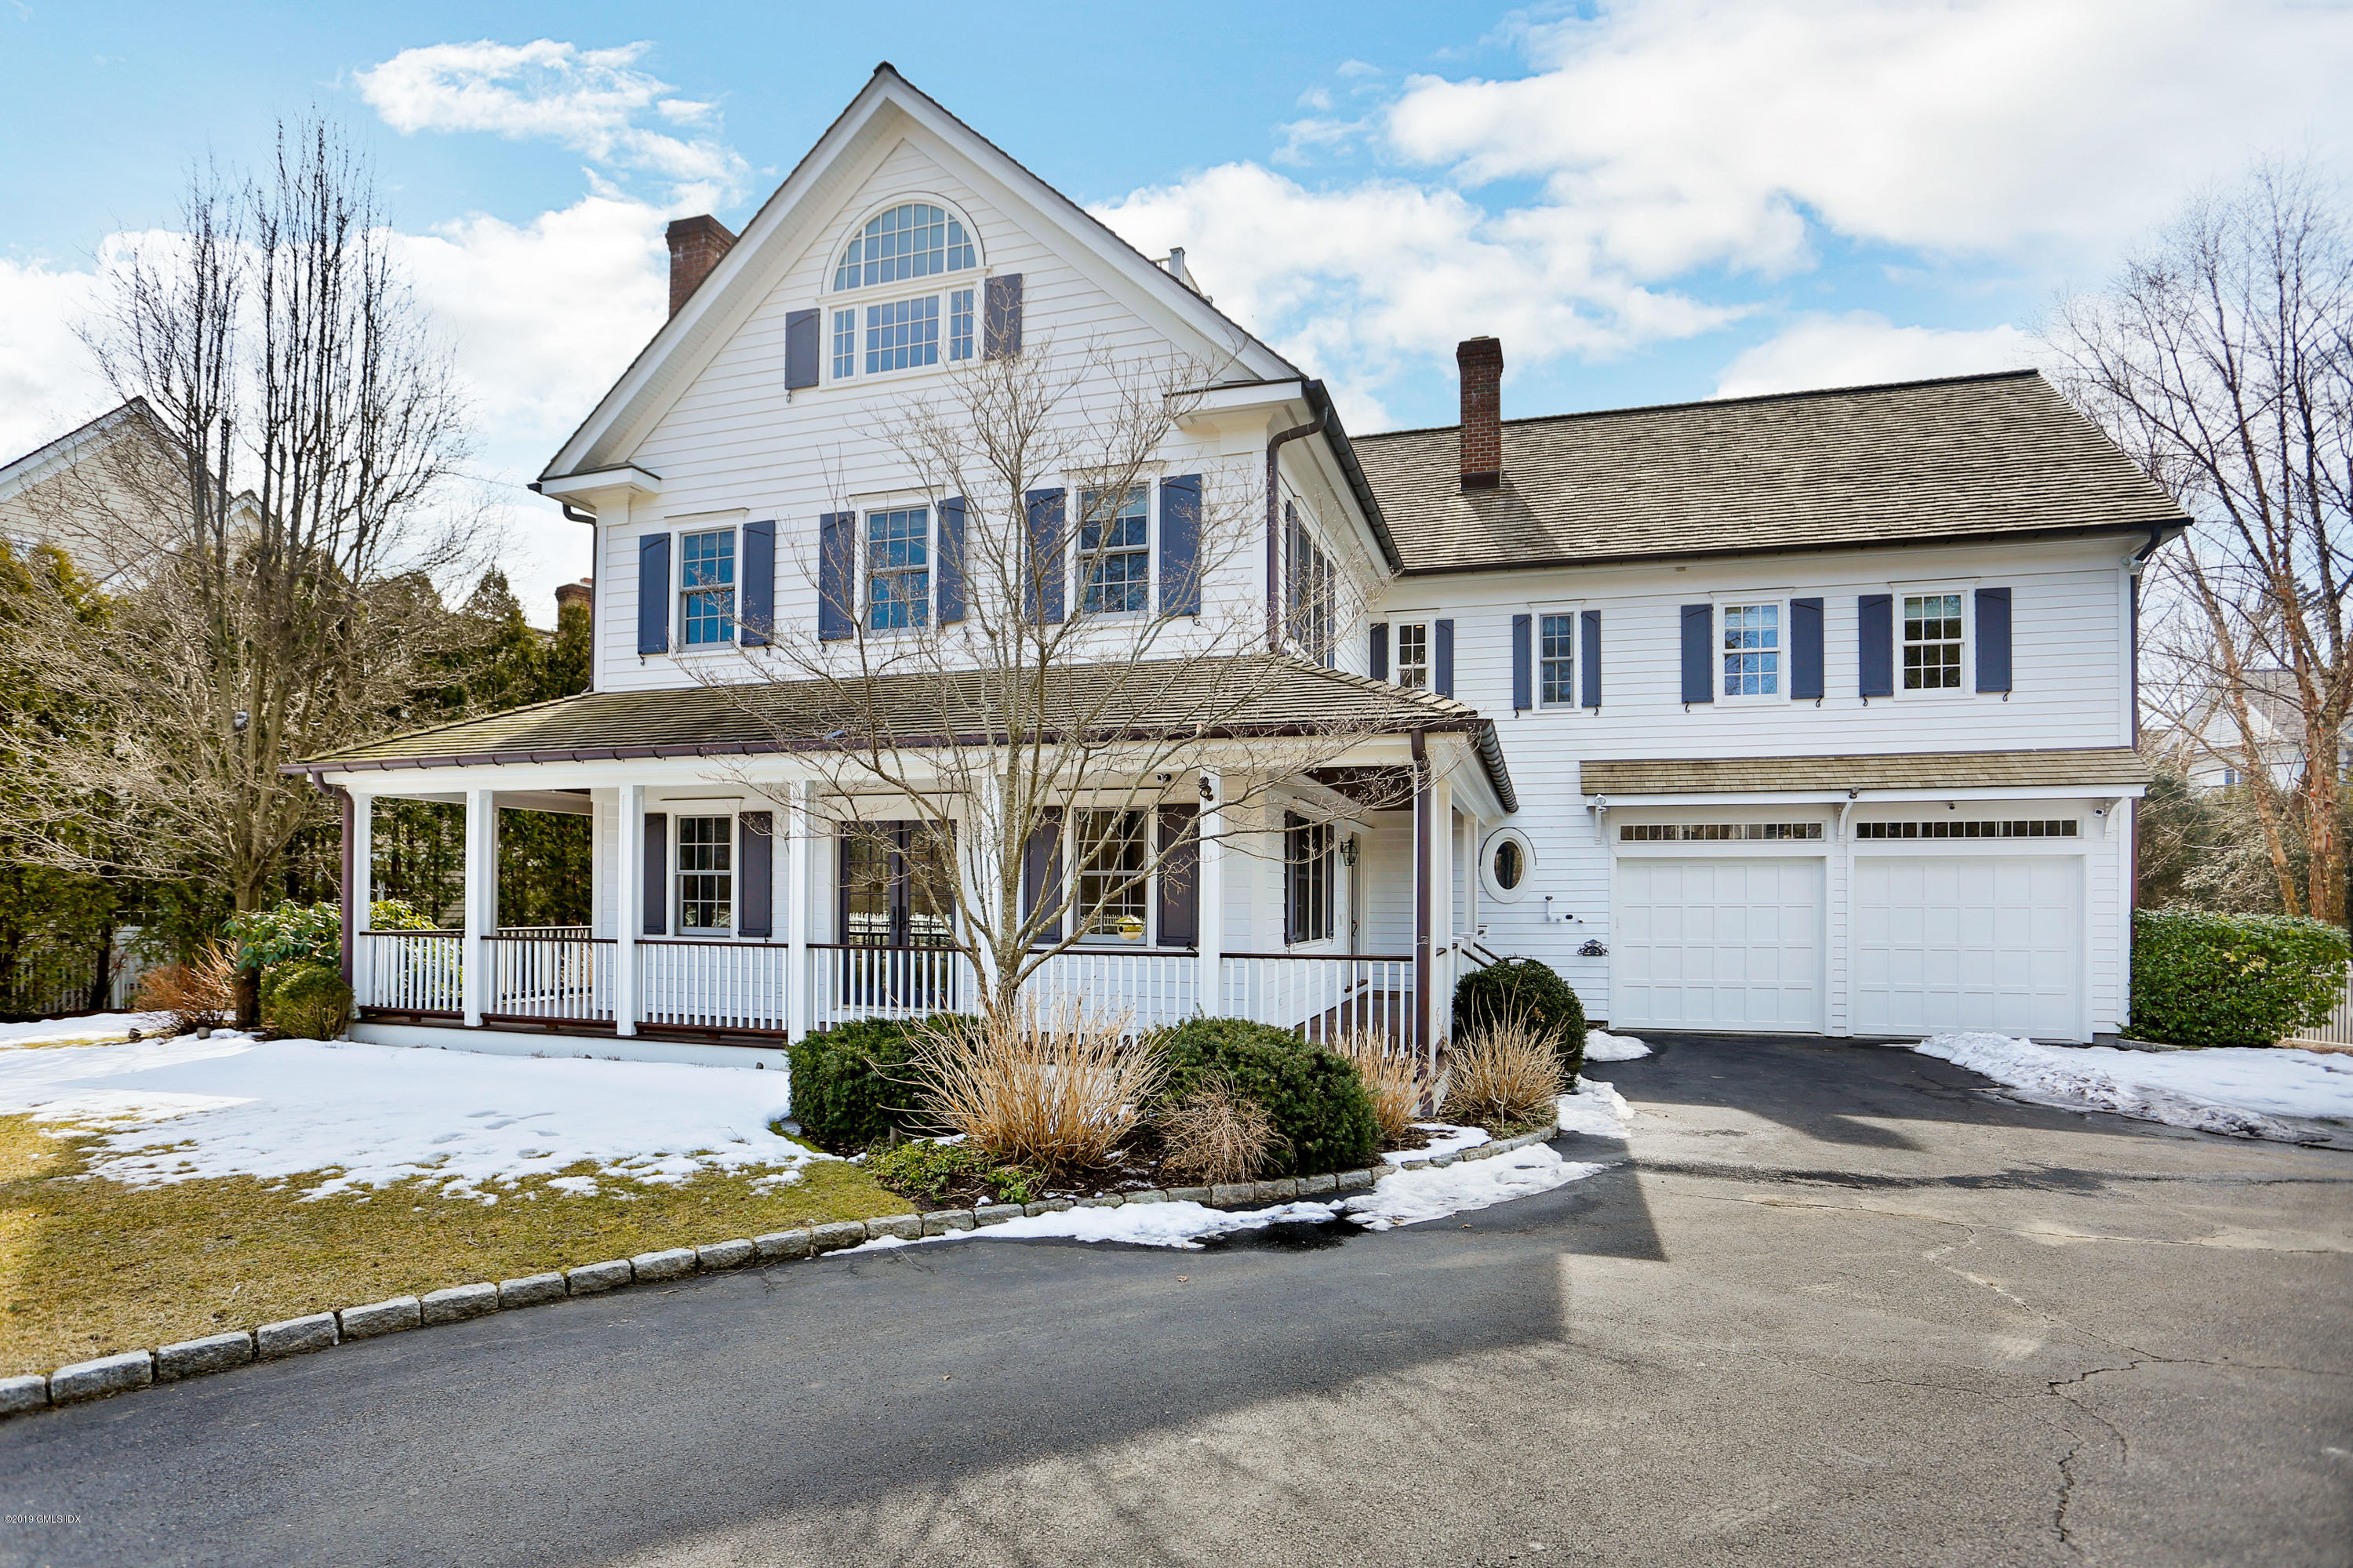 3 Tomac Lane,Old Greenwich,Connecticut 06870,5 Bedrooms Bedrooms,5 BathroomsBathrooms,Single family,Tomac,105835